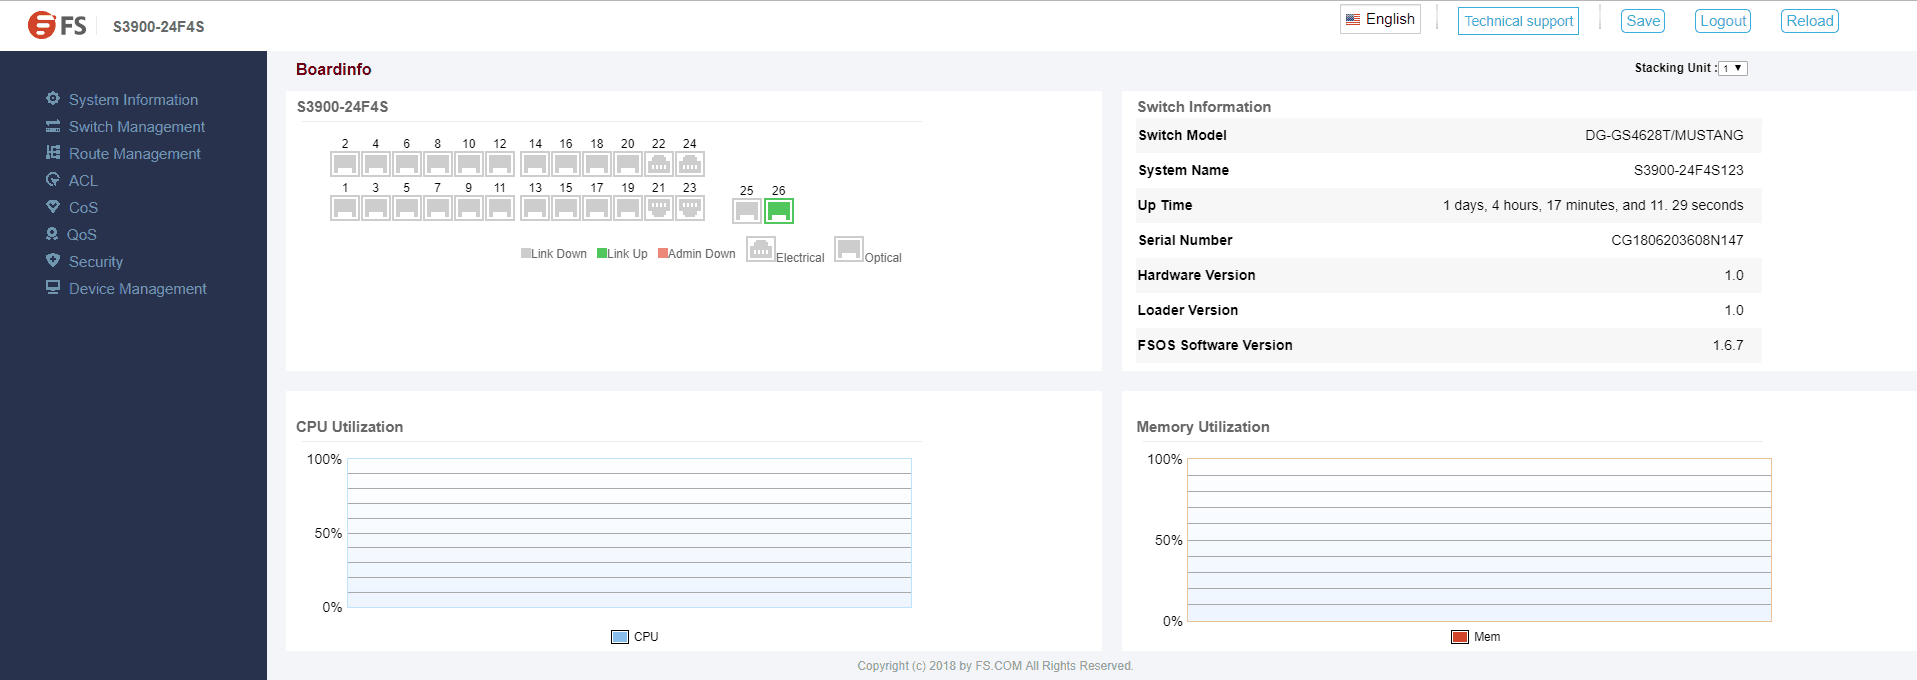 configuration-status-of-switch-in-web-interface.png